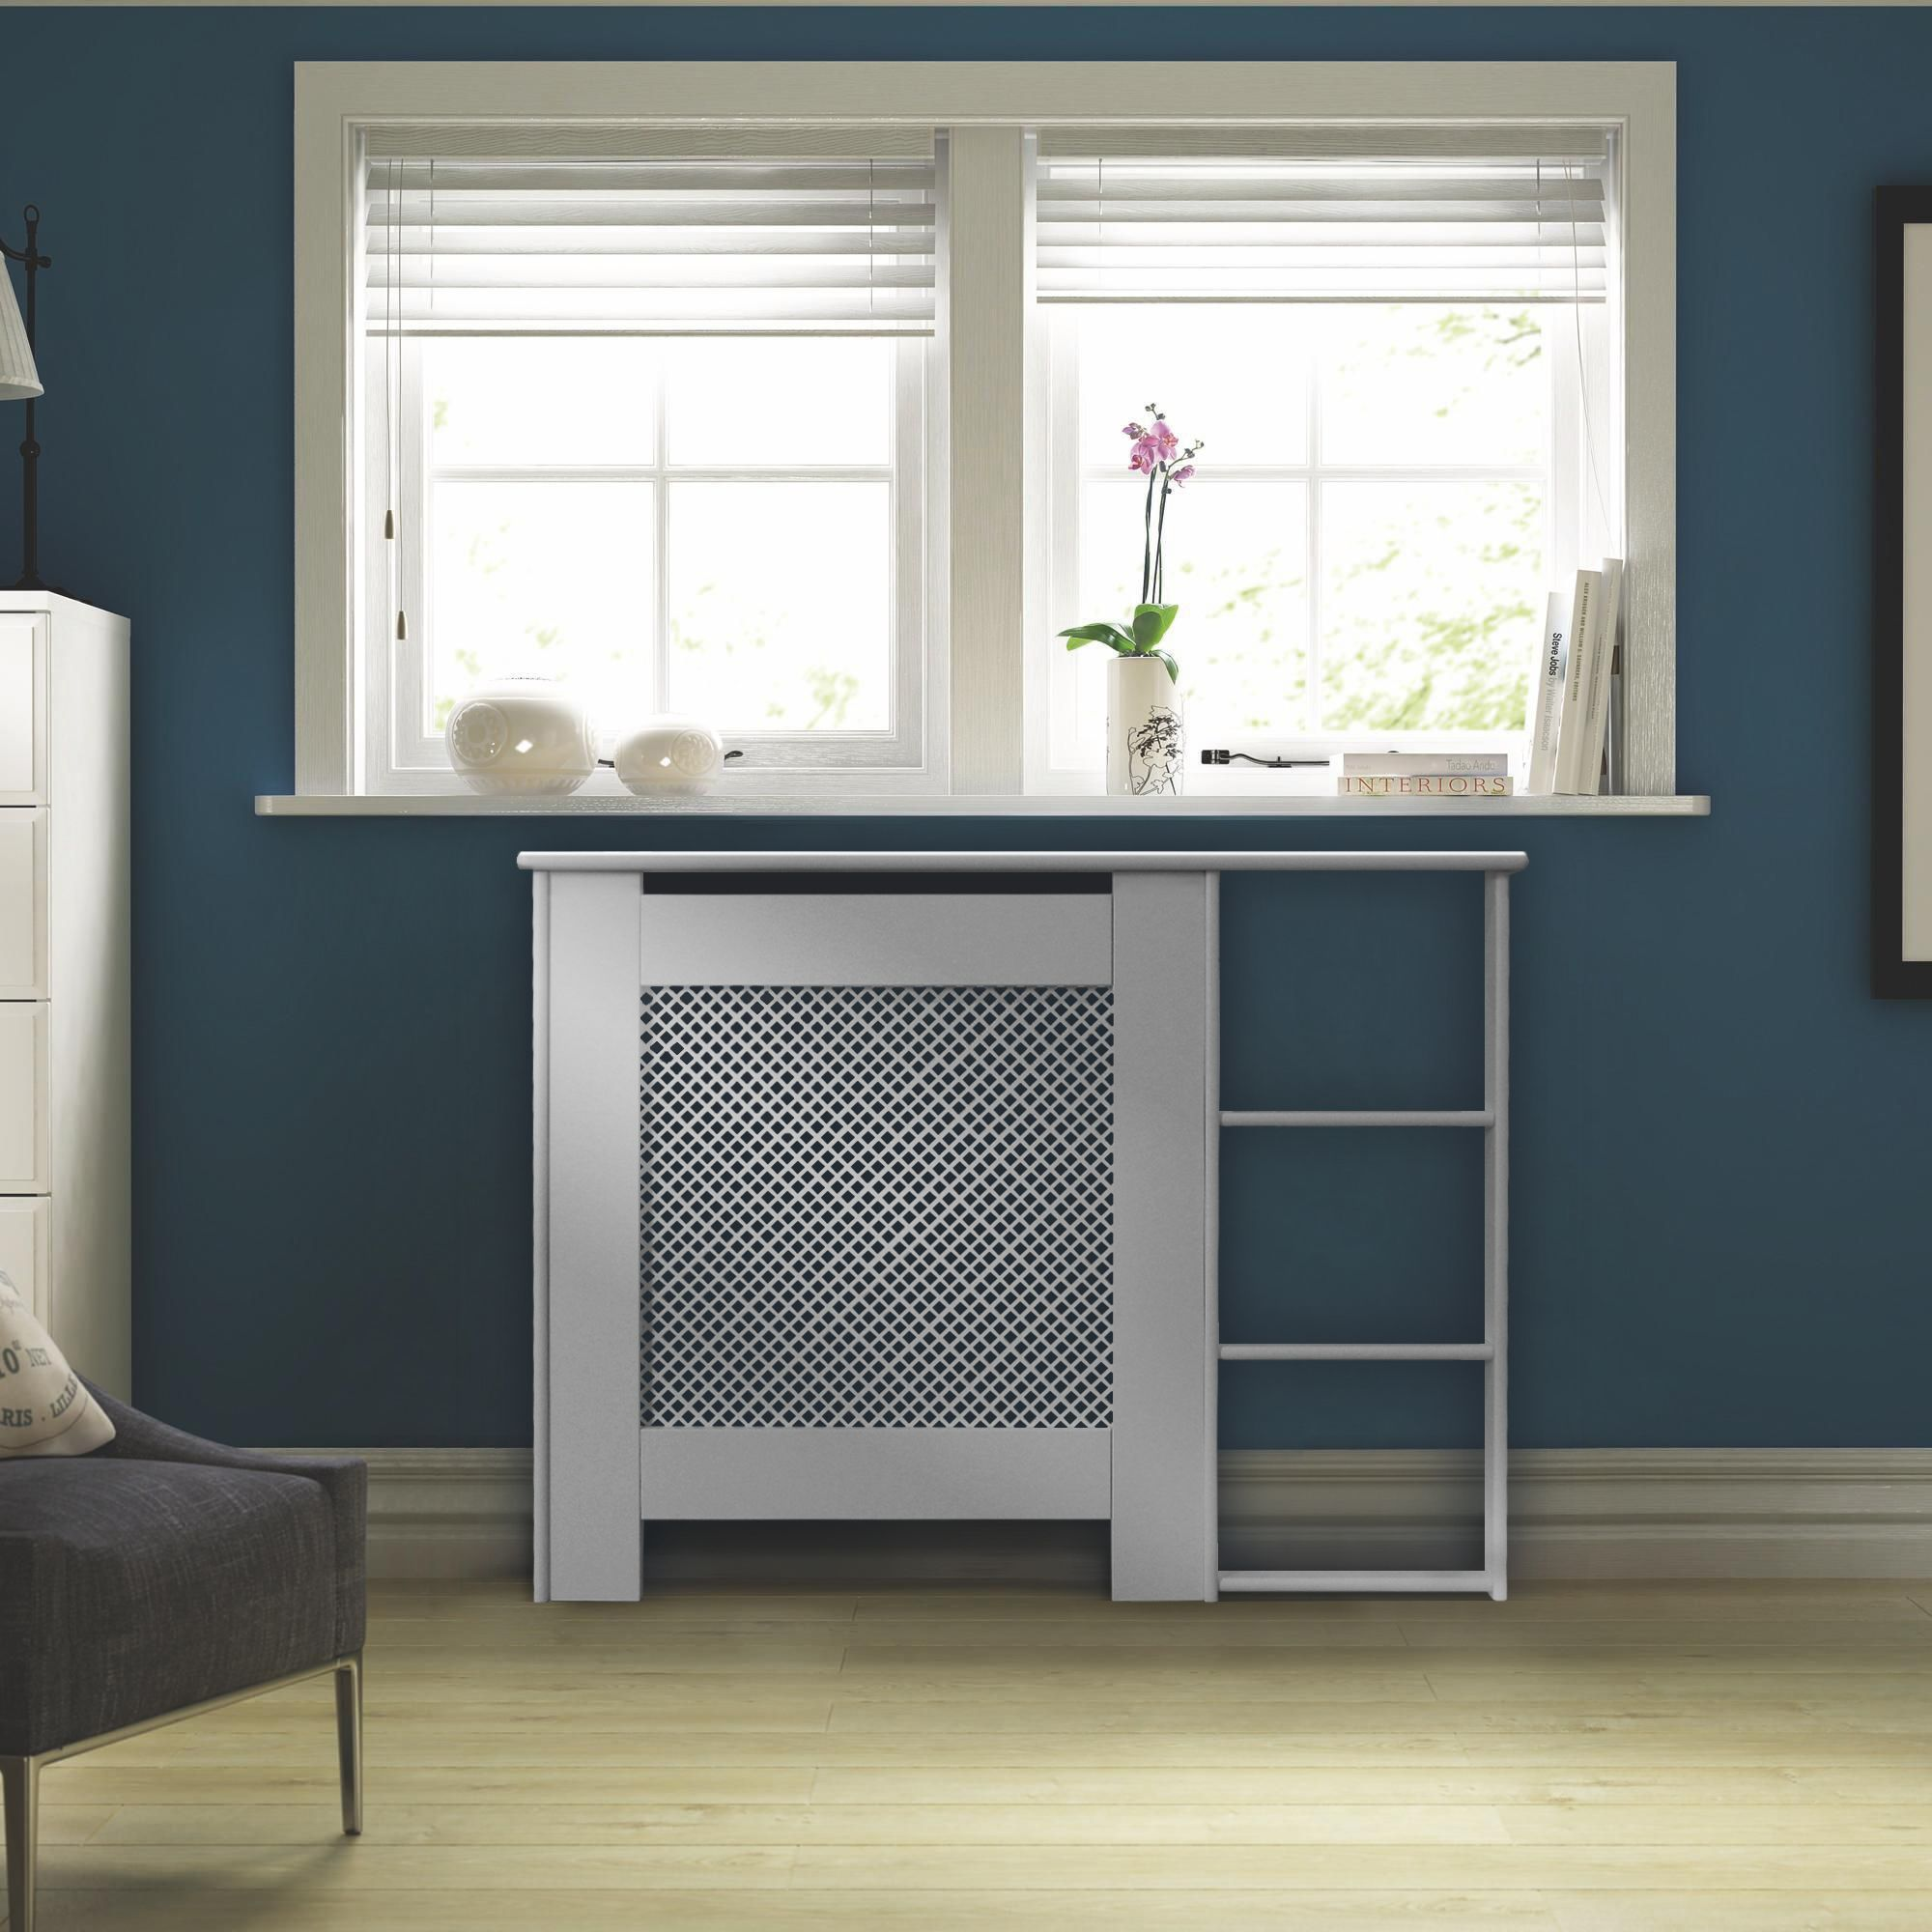 Mayfair Mini White Painted End Shelf Radiator Cover